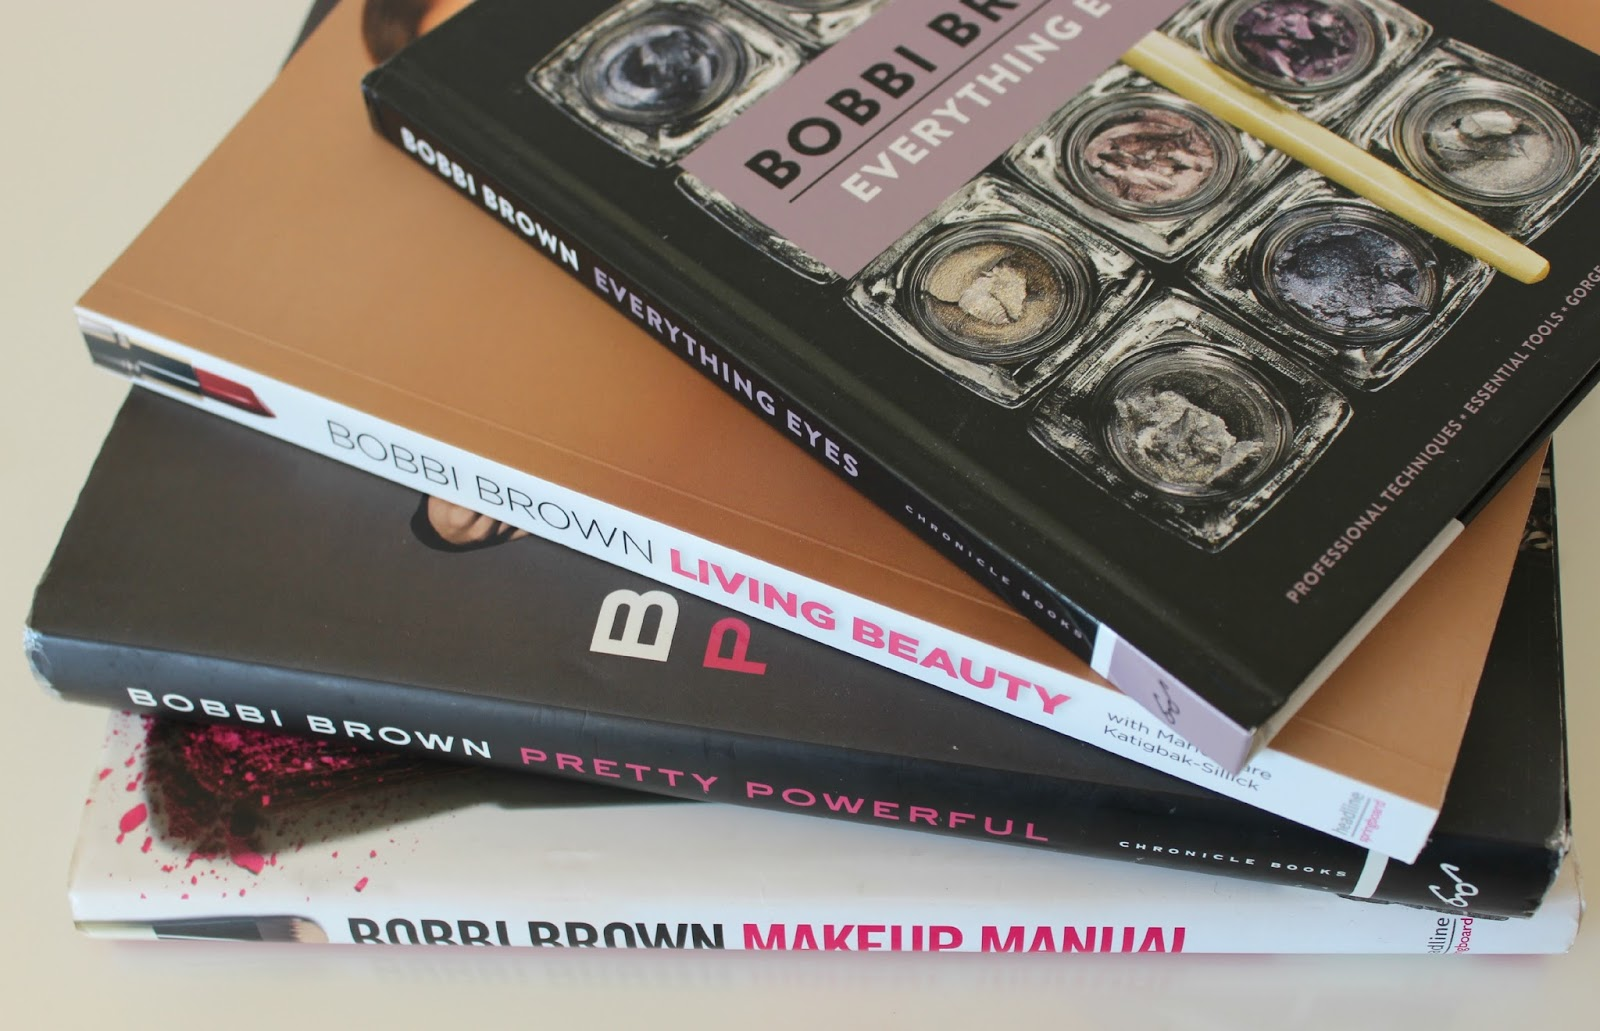 A picture of Bobbi Brown Beauty Books